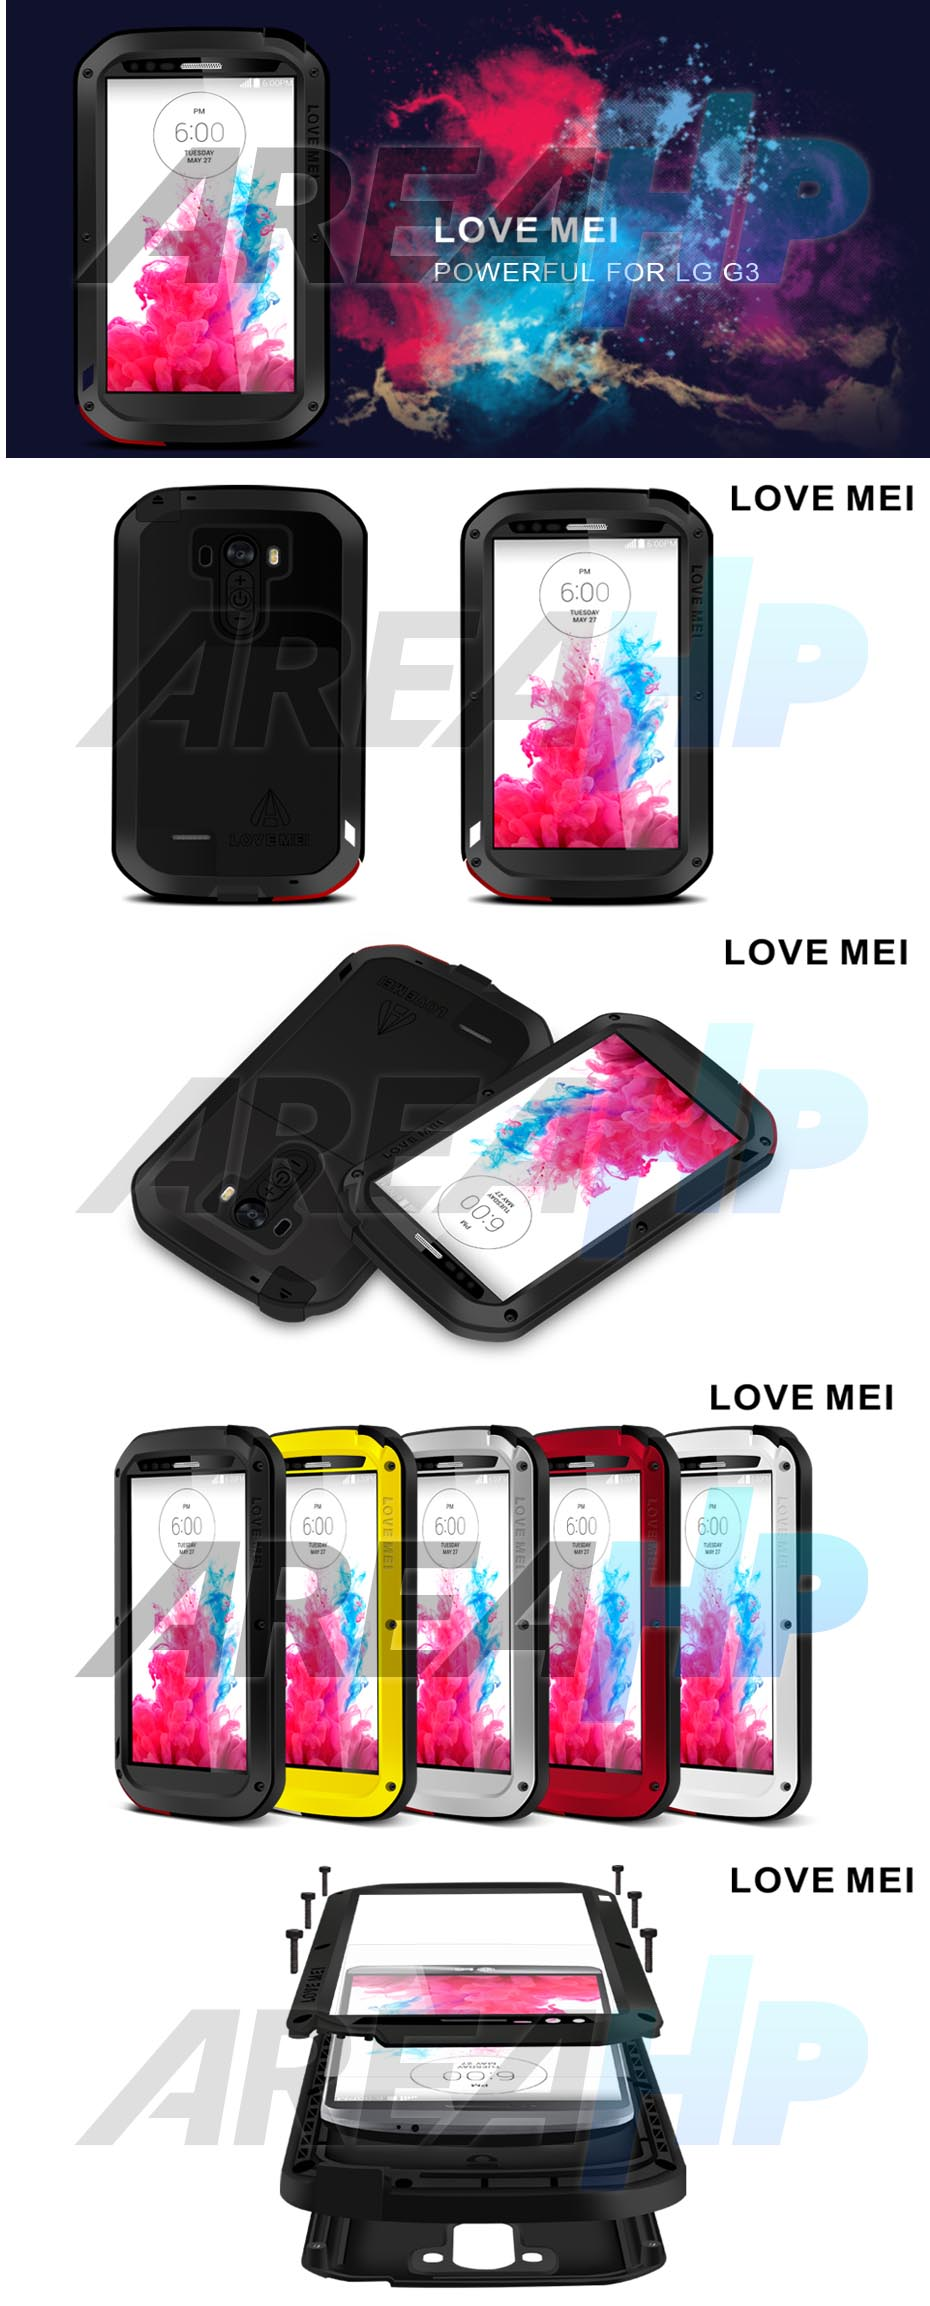 Love Mei Powerful Case for LG G3 Overview